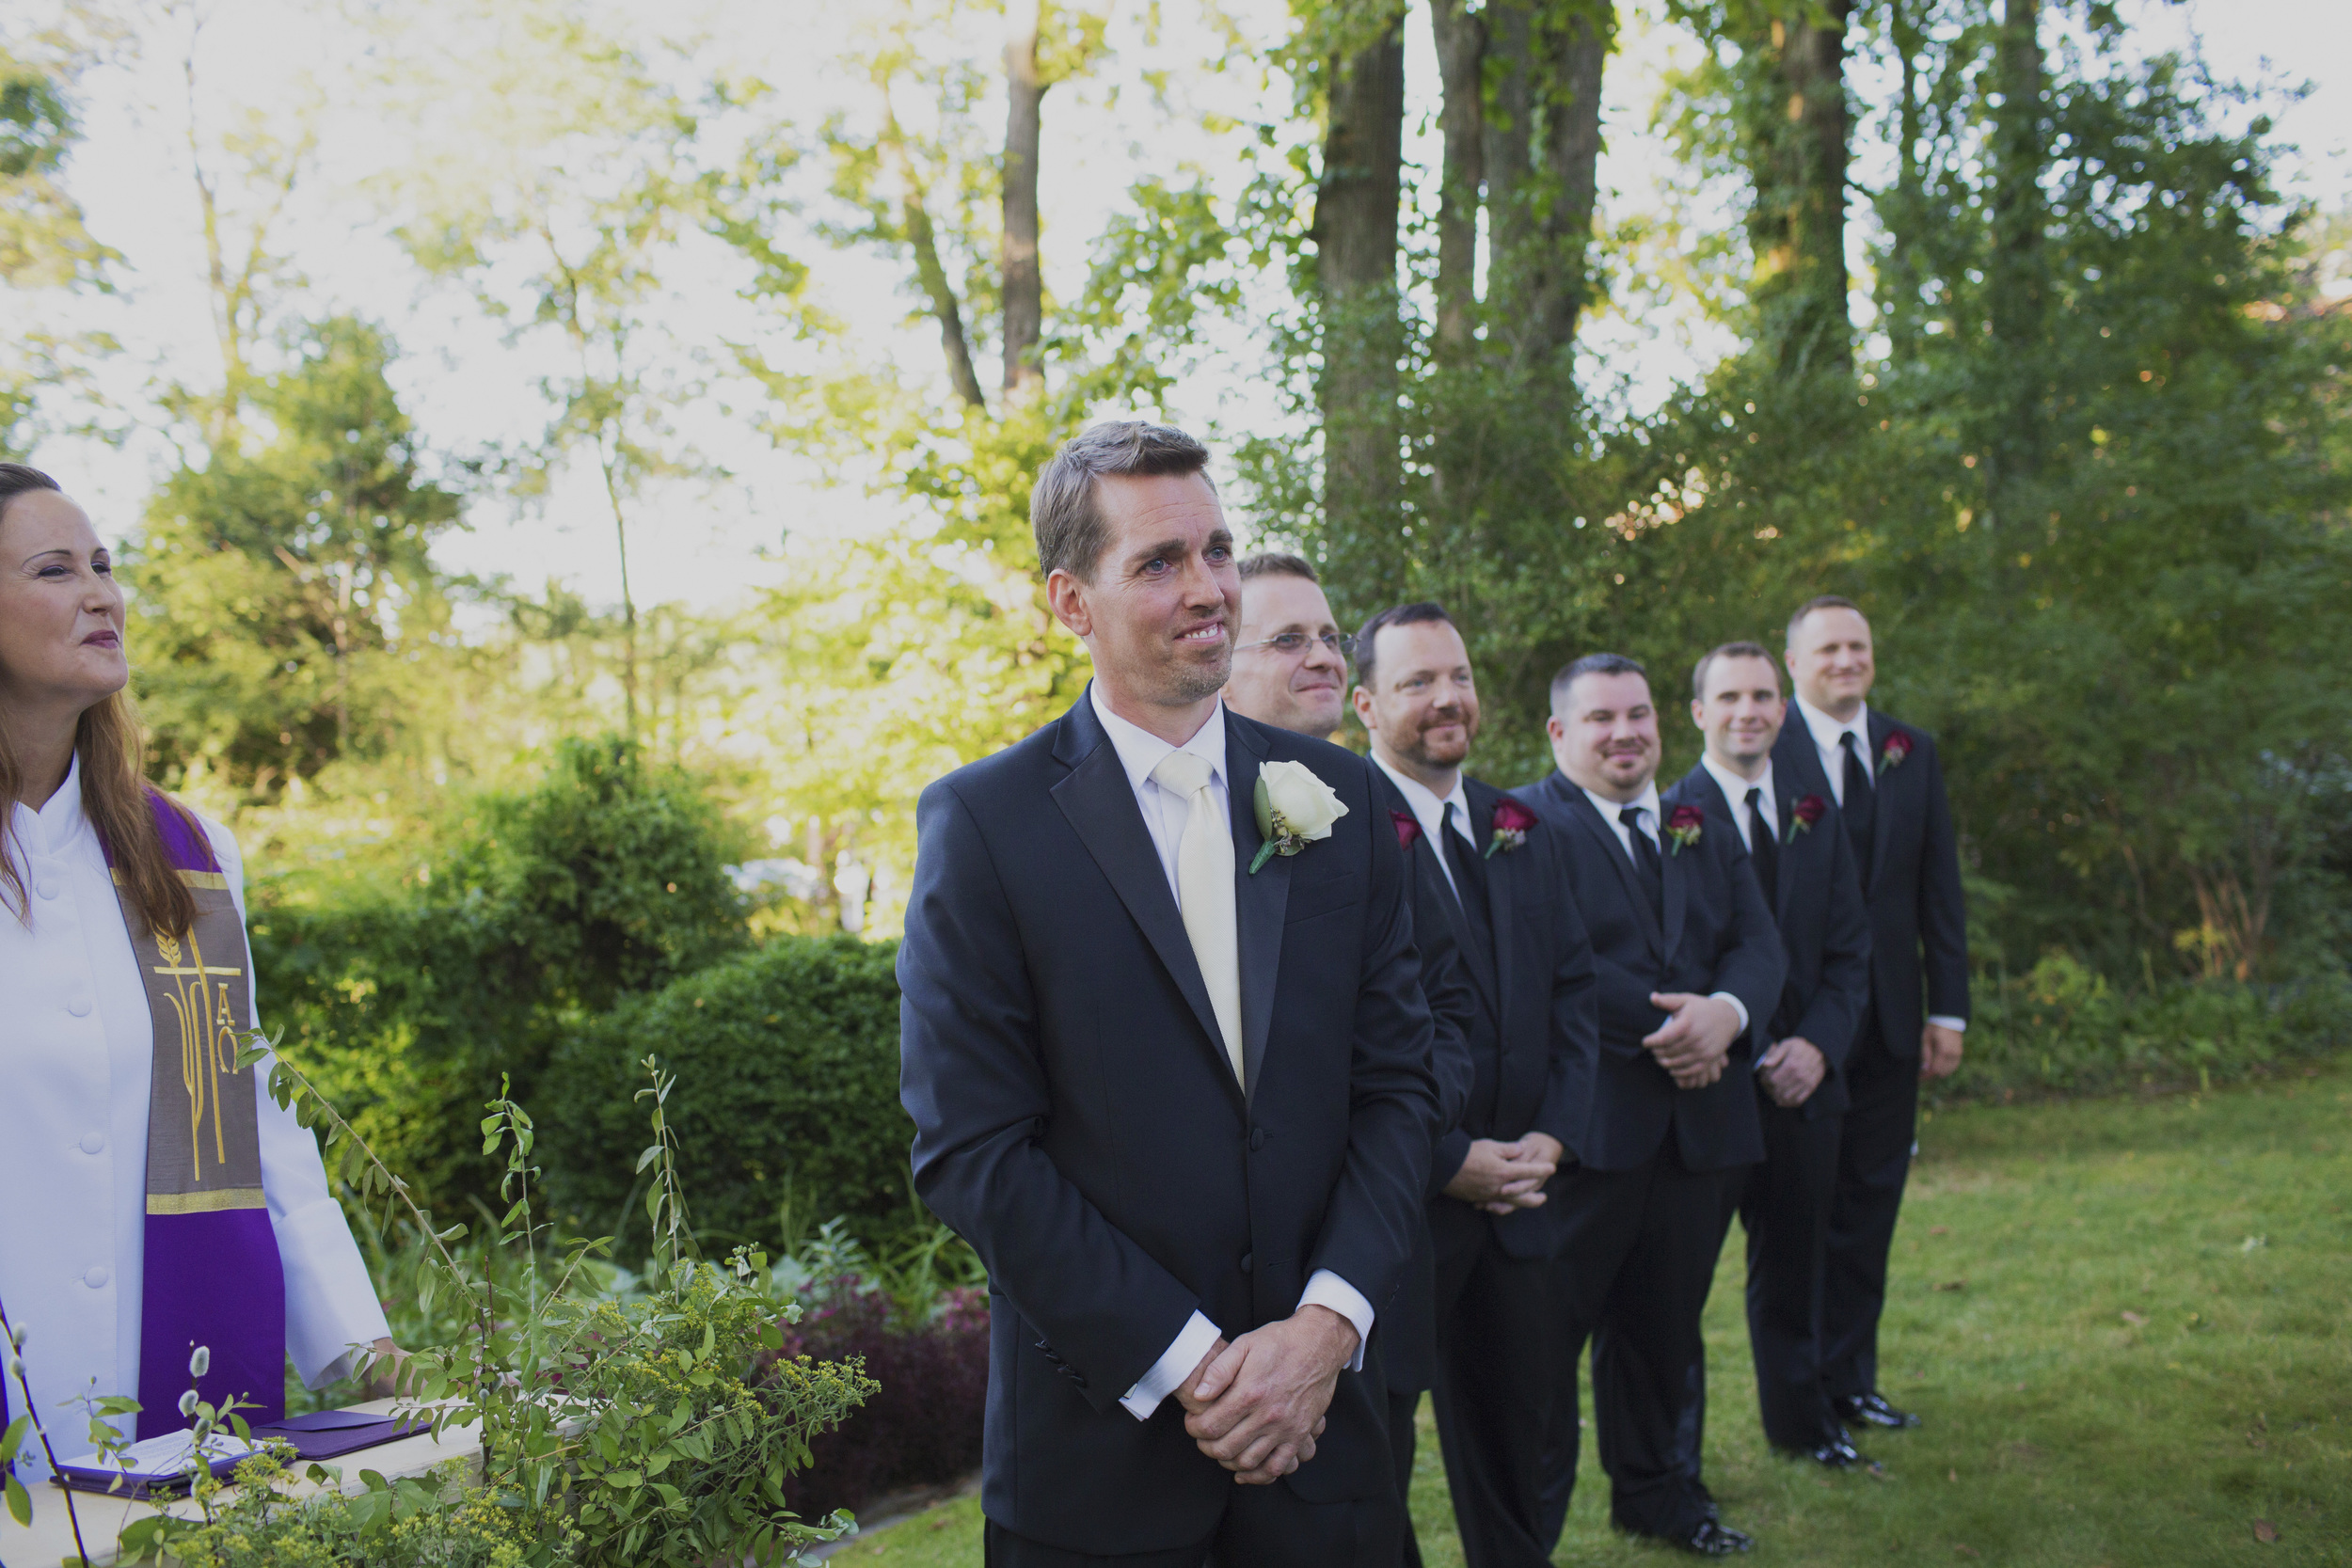 NJ Outdoor wedding